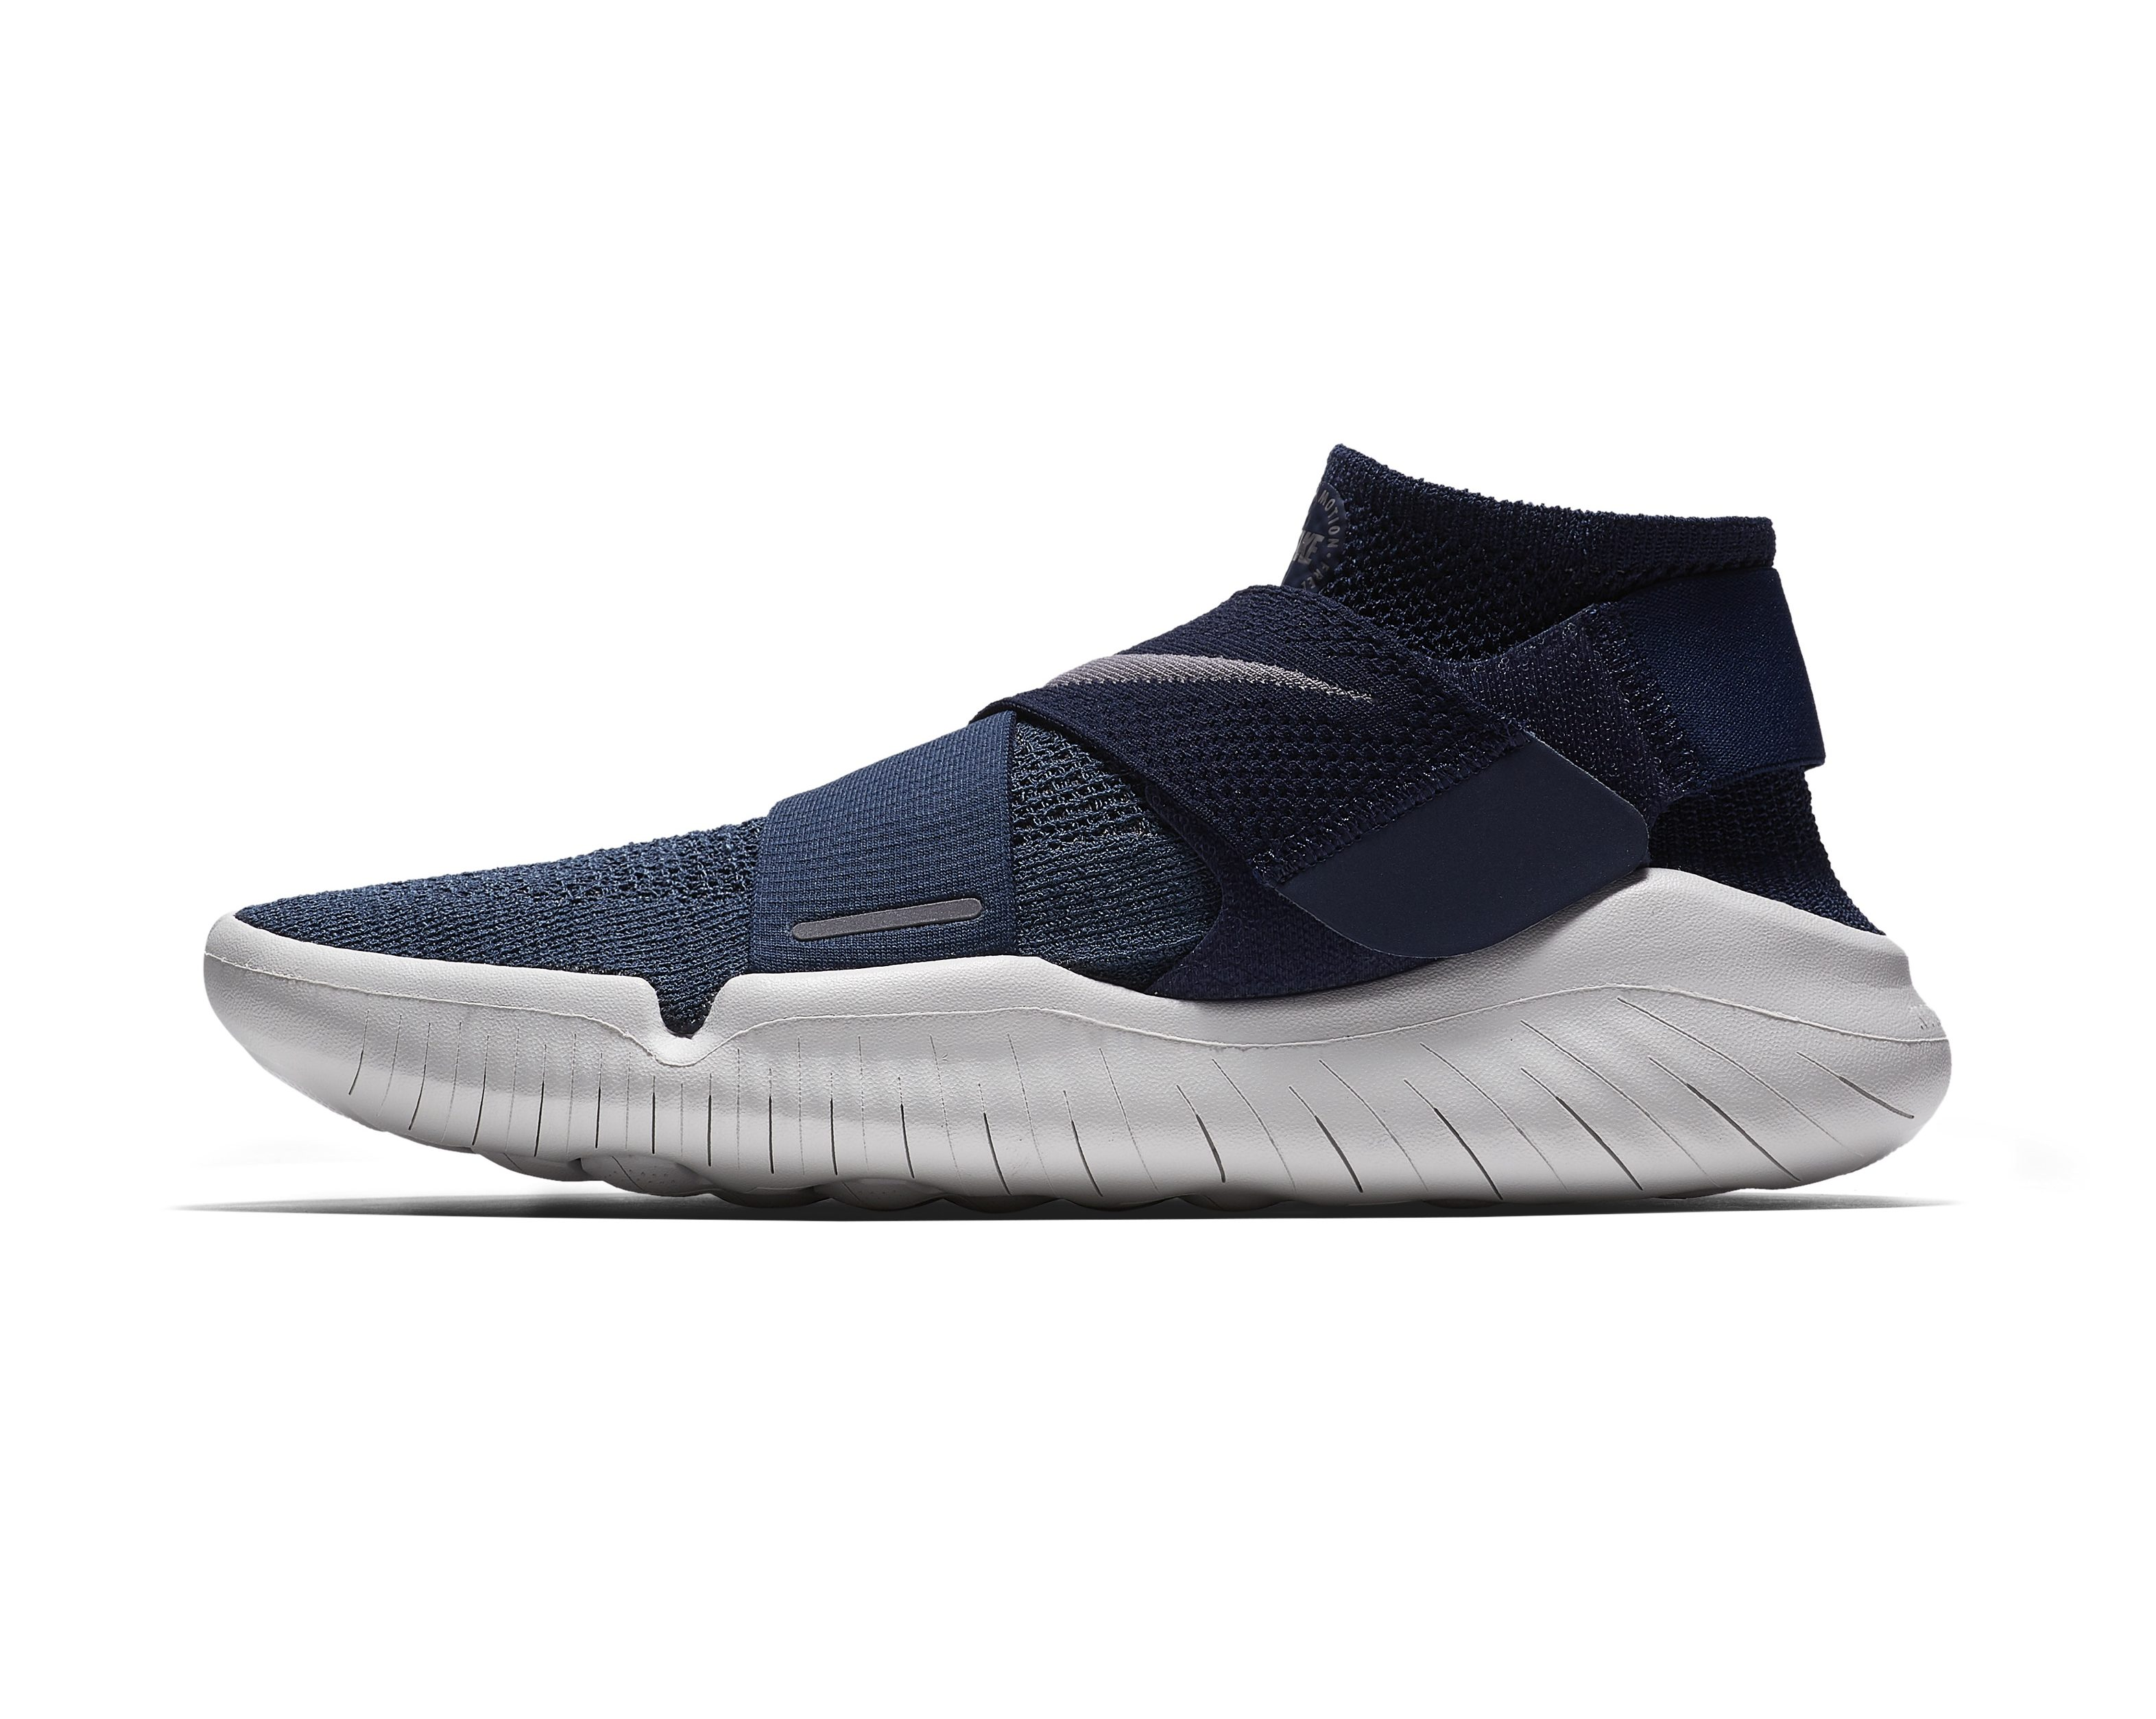 sports shoes 2b04c e9ee4 Nike Free RN Motion 360 release date. Apr5